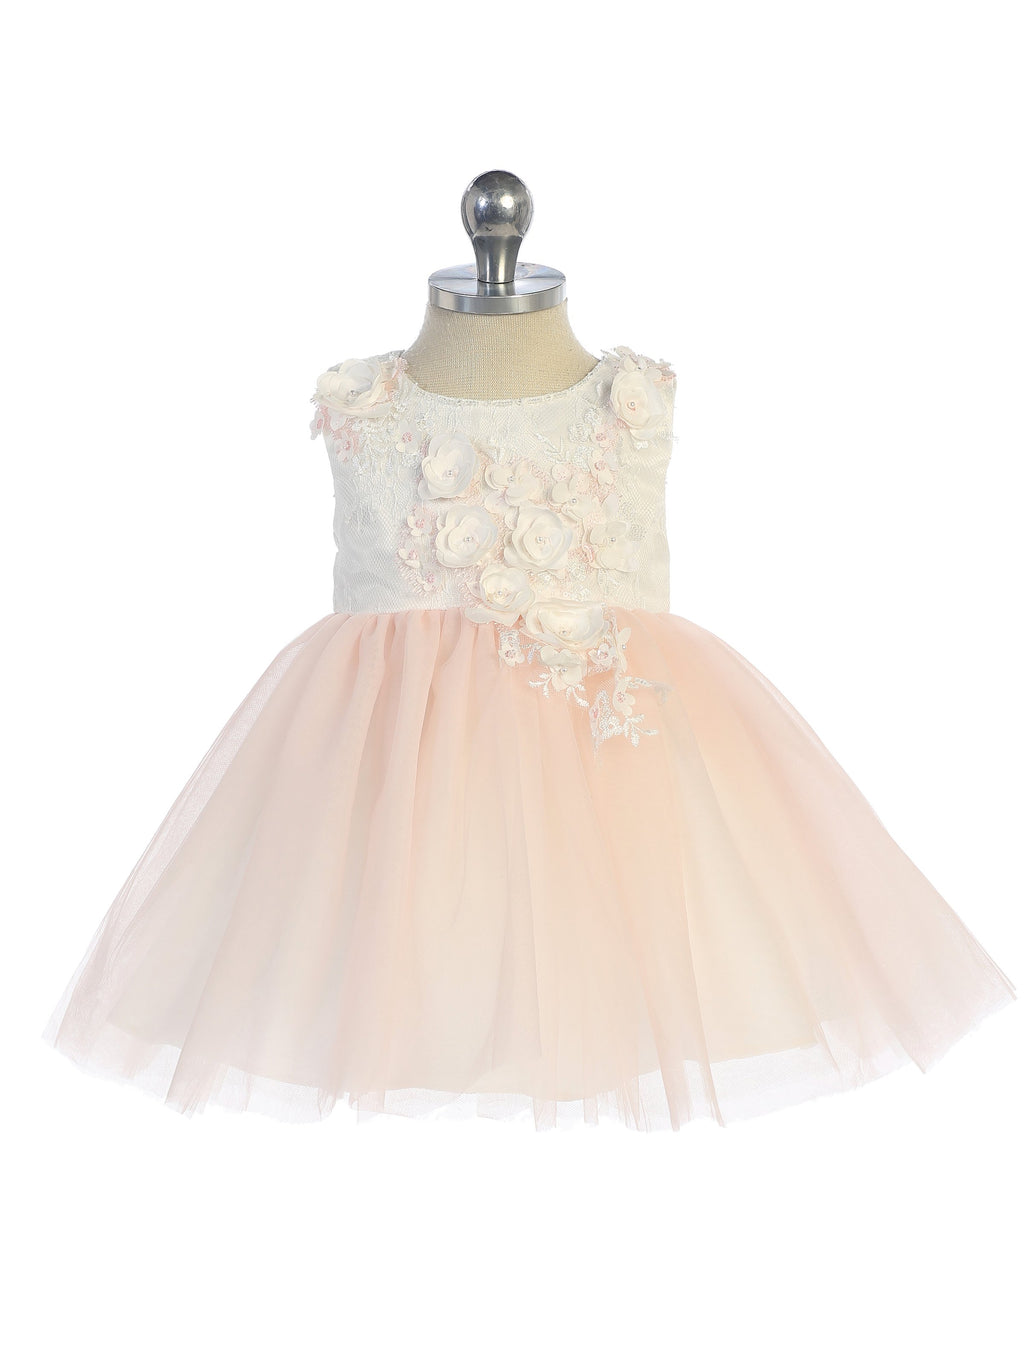 Blush Sleeveless Lace Bodice with Mesh Skirt and 3D Flowers